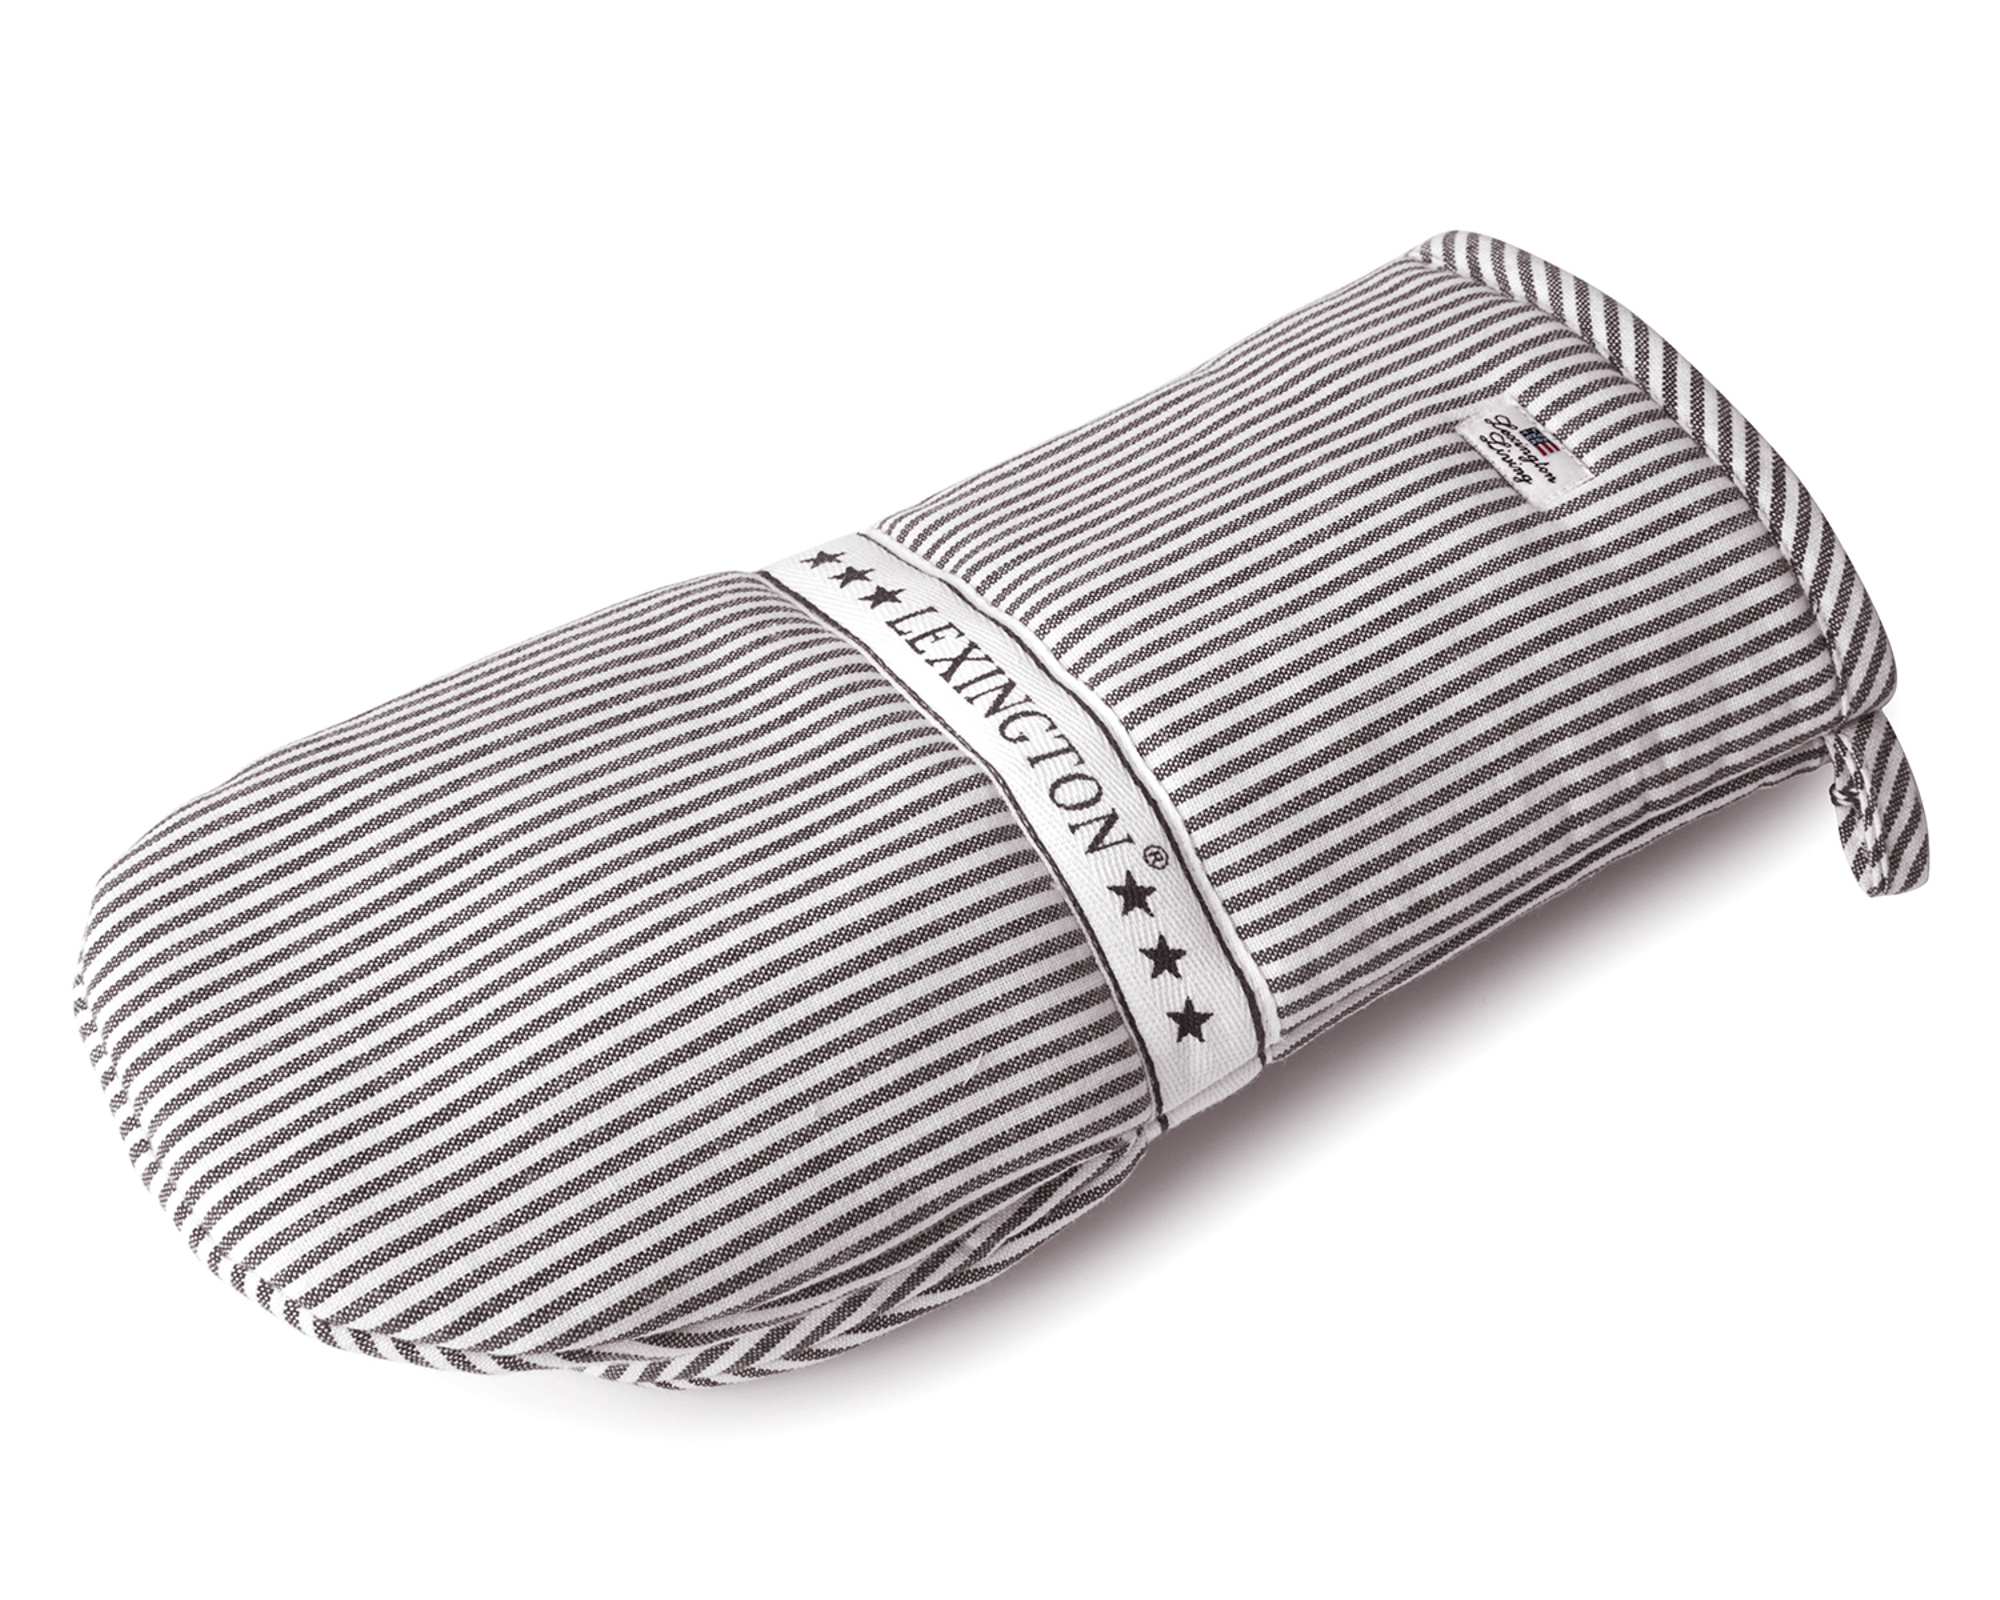 Icons Oxford Dark Gray/White Striped Mitten